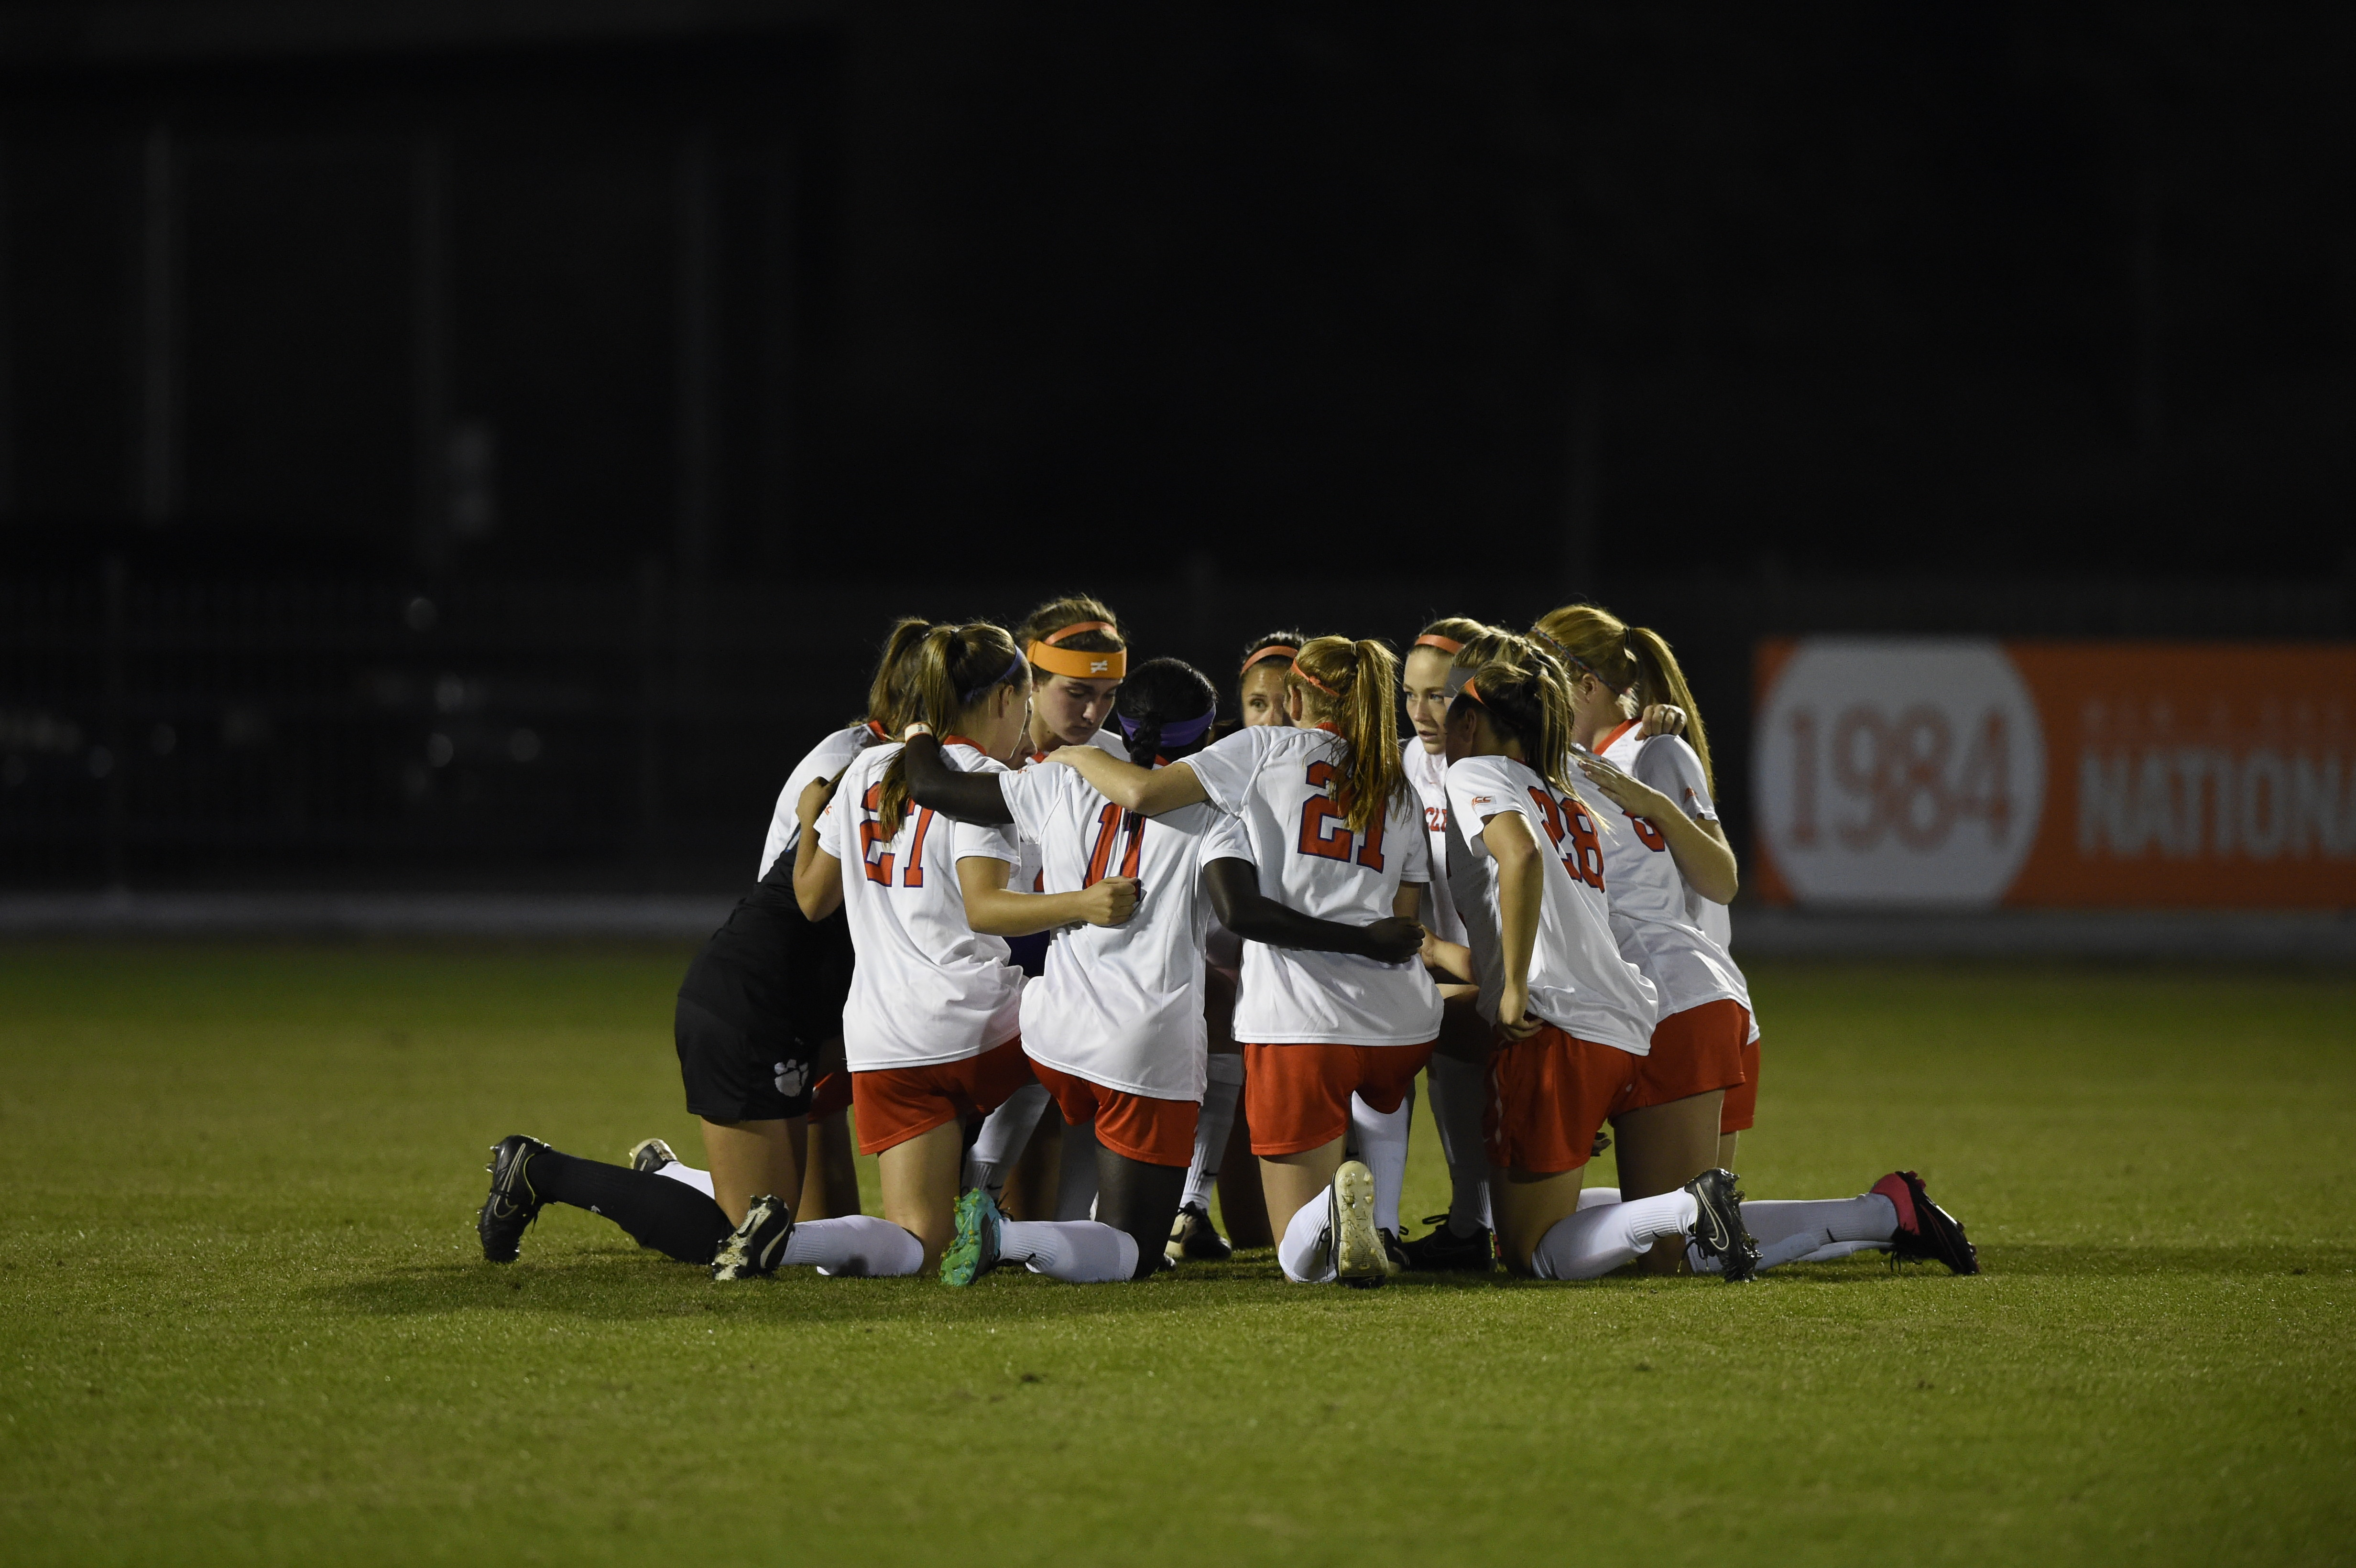 Tigers Fall in Penalty Kicks to Ole Miss in NCAA Second Round